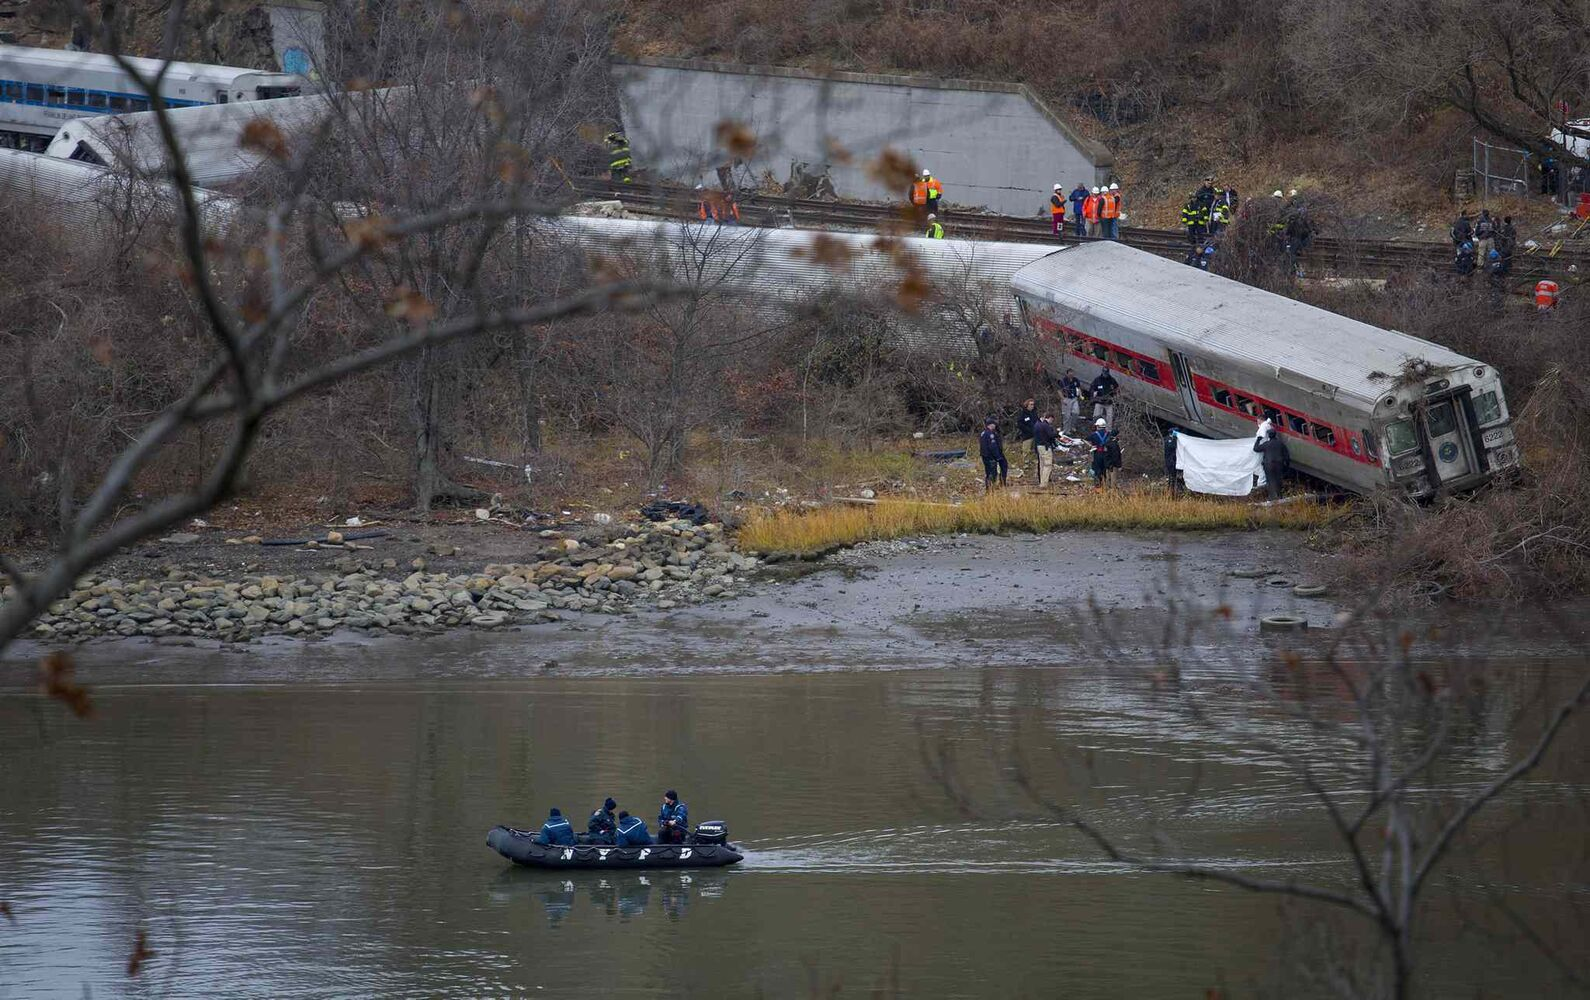 Viewed from Manhattan, first responders and others work near a victim next to a derailed Metro North passenger train. (Craig Ruttle / The Associated Press)